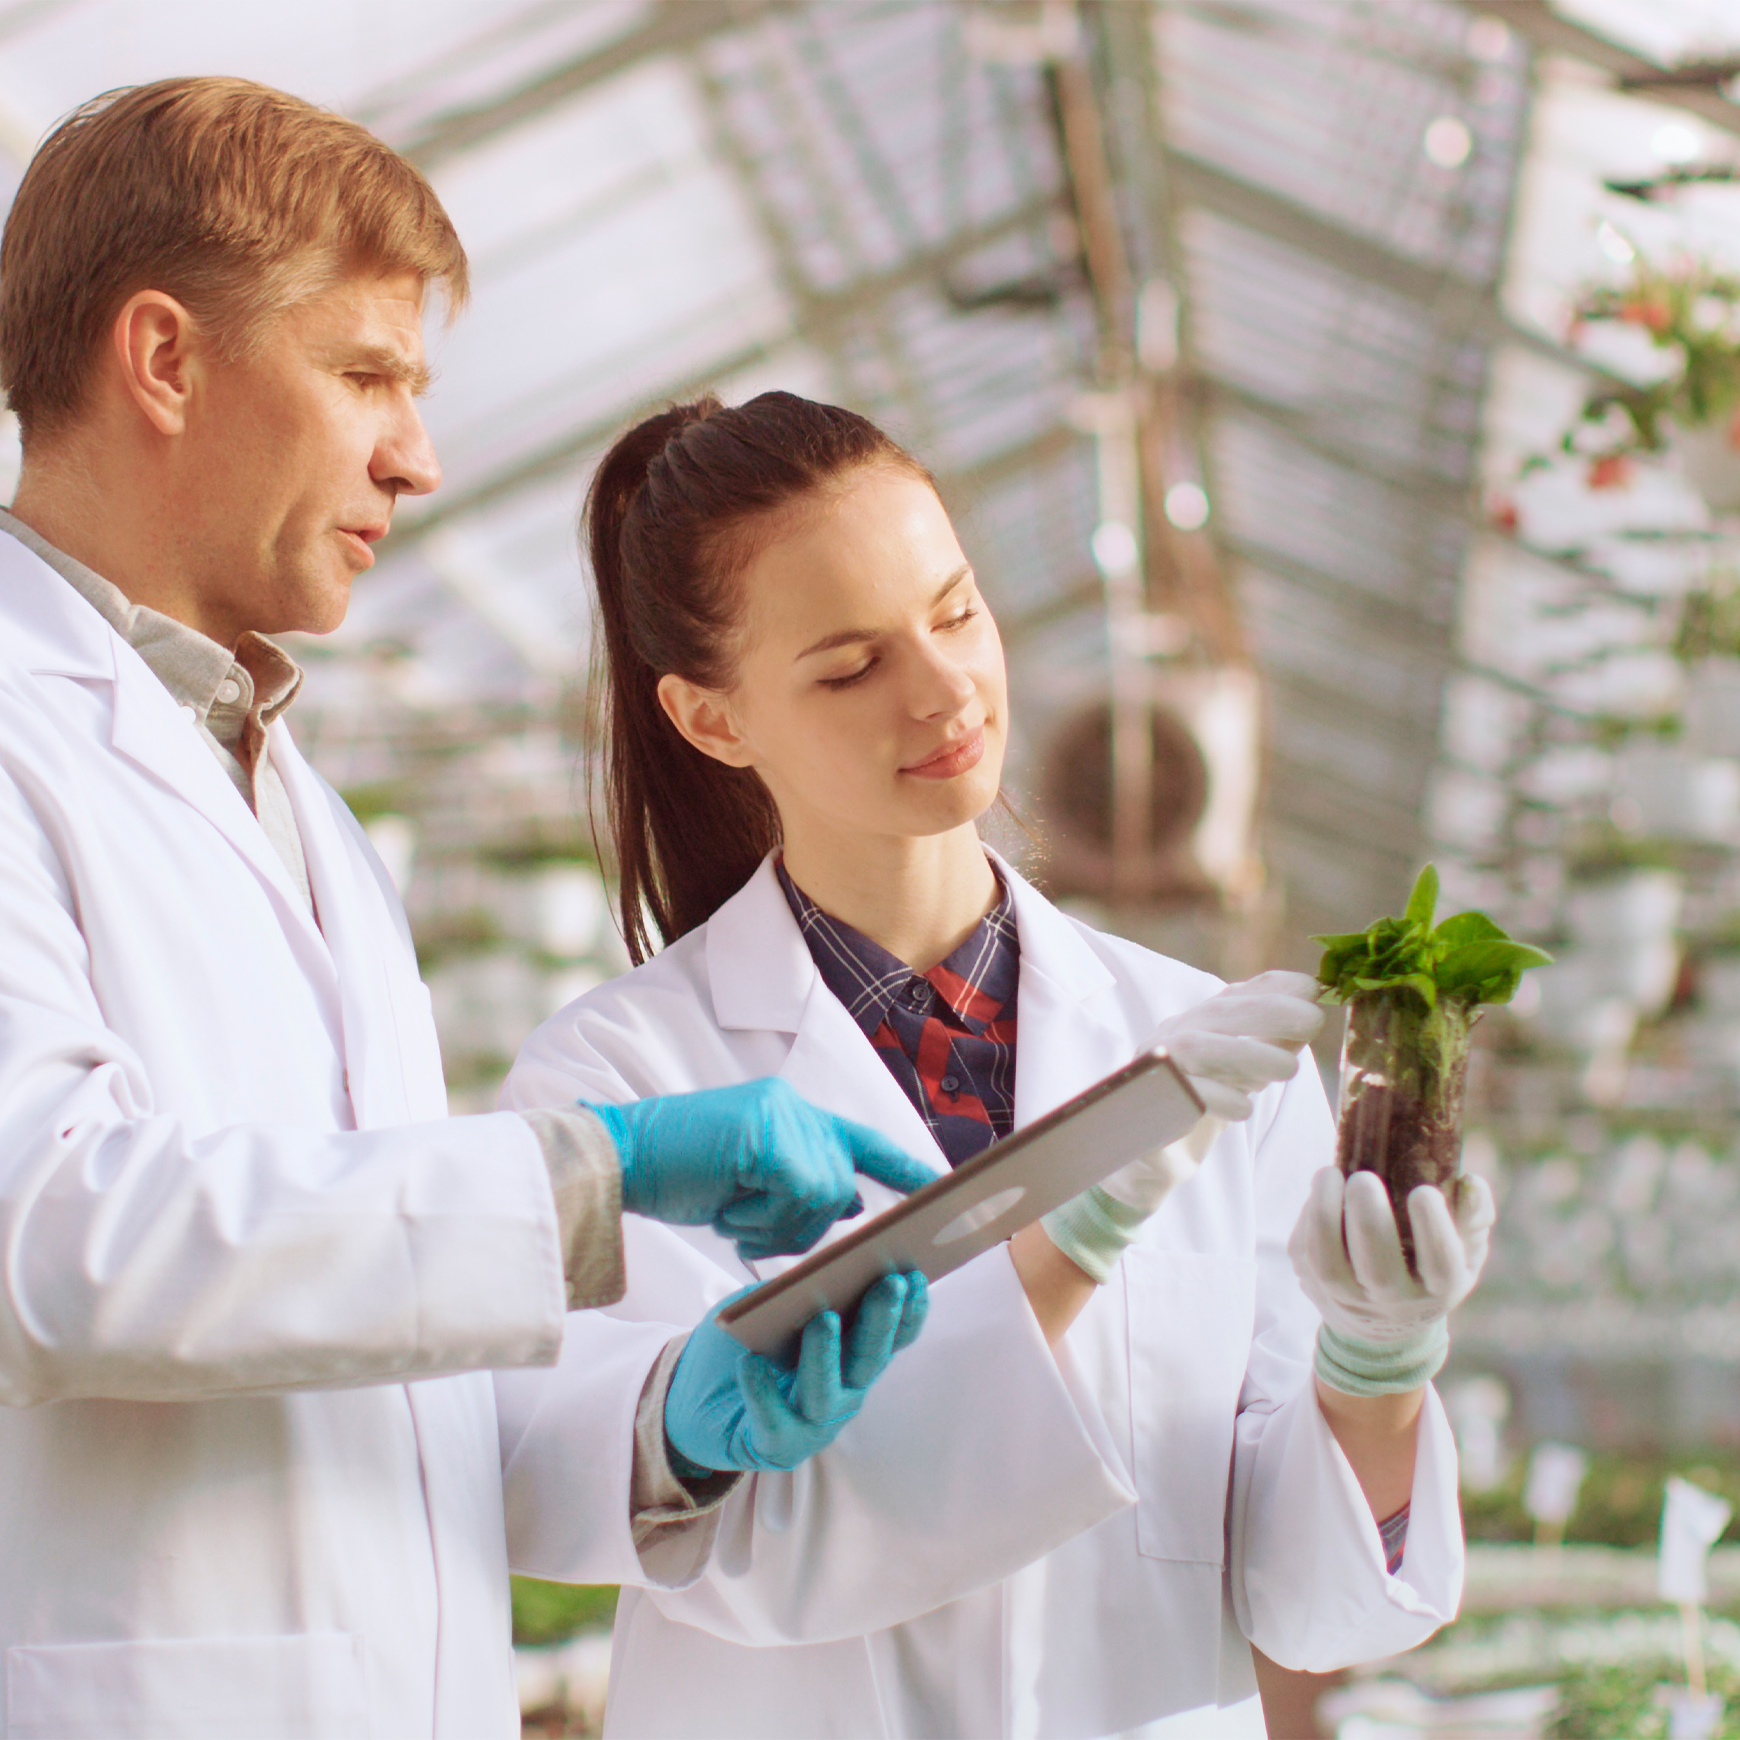 scientists using tablet in greenhouse and inspecting plants